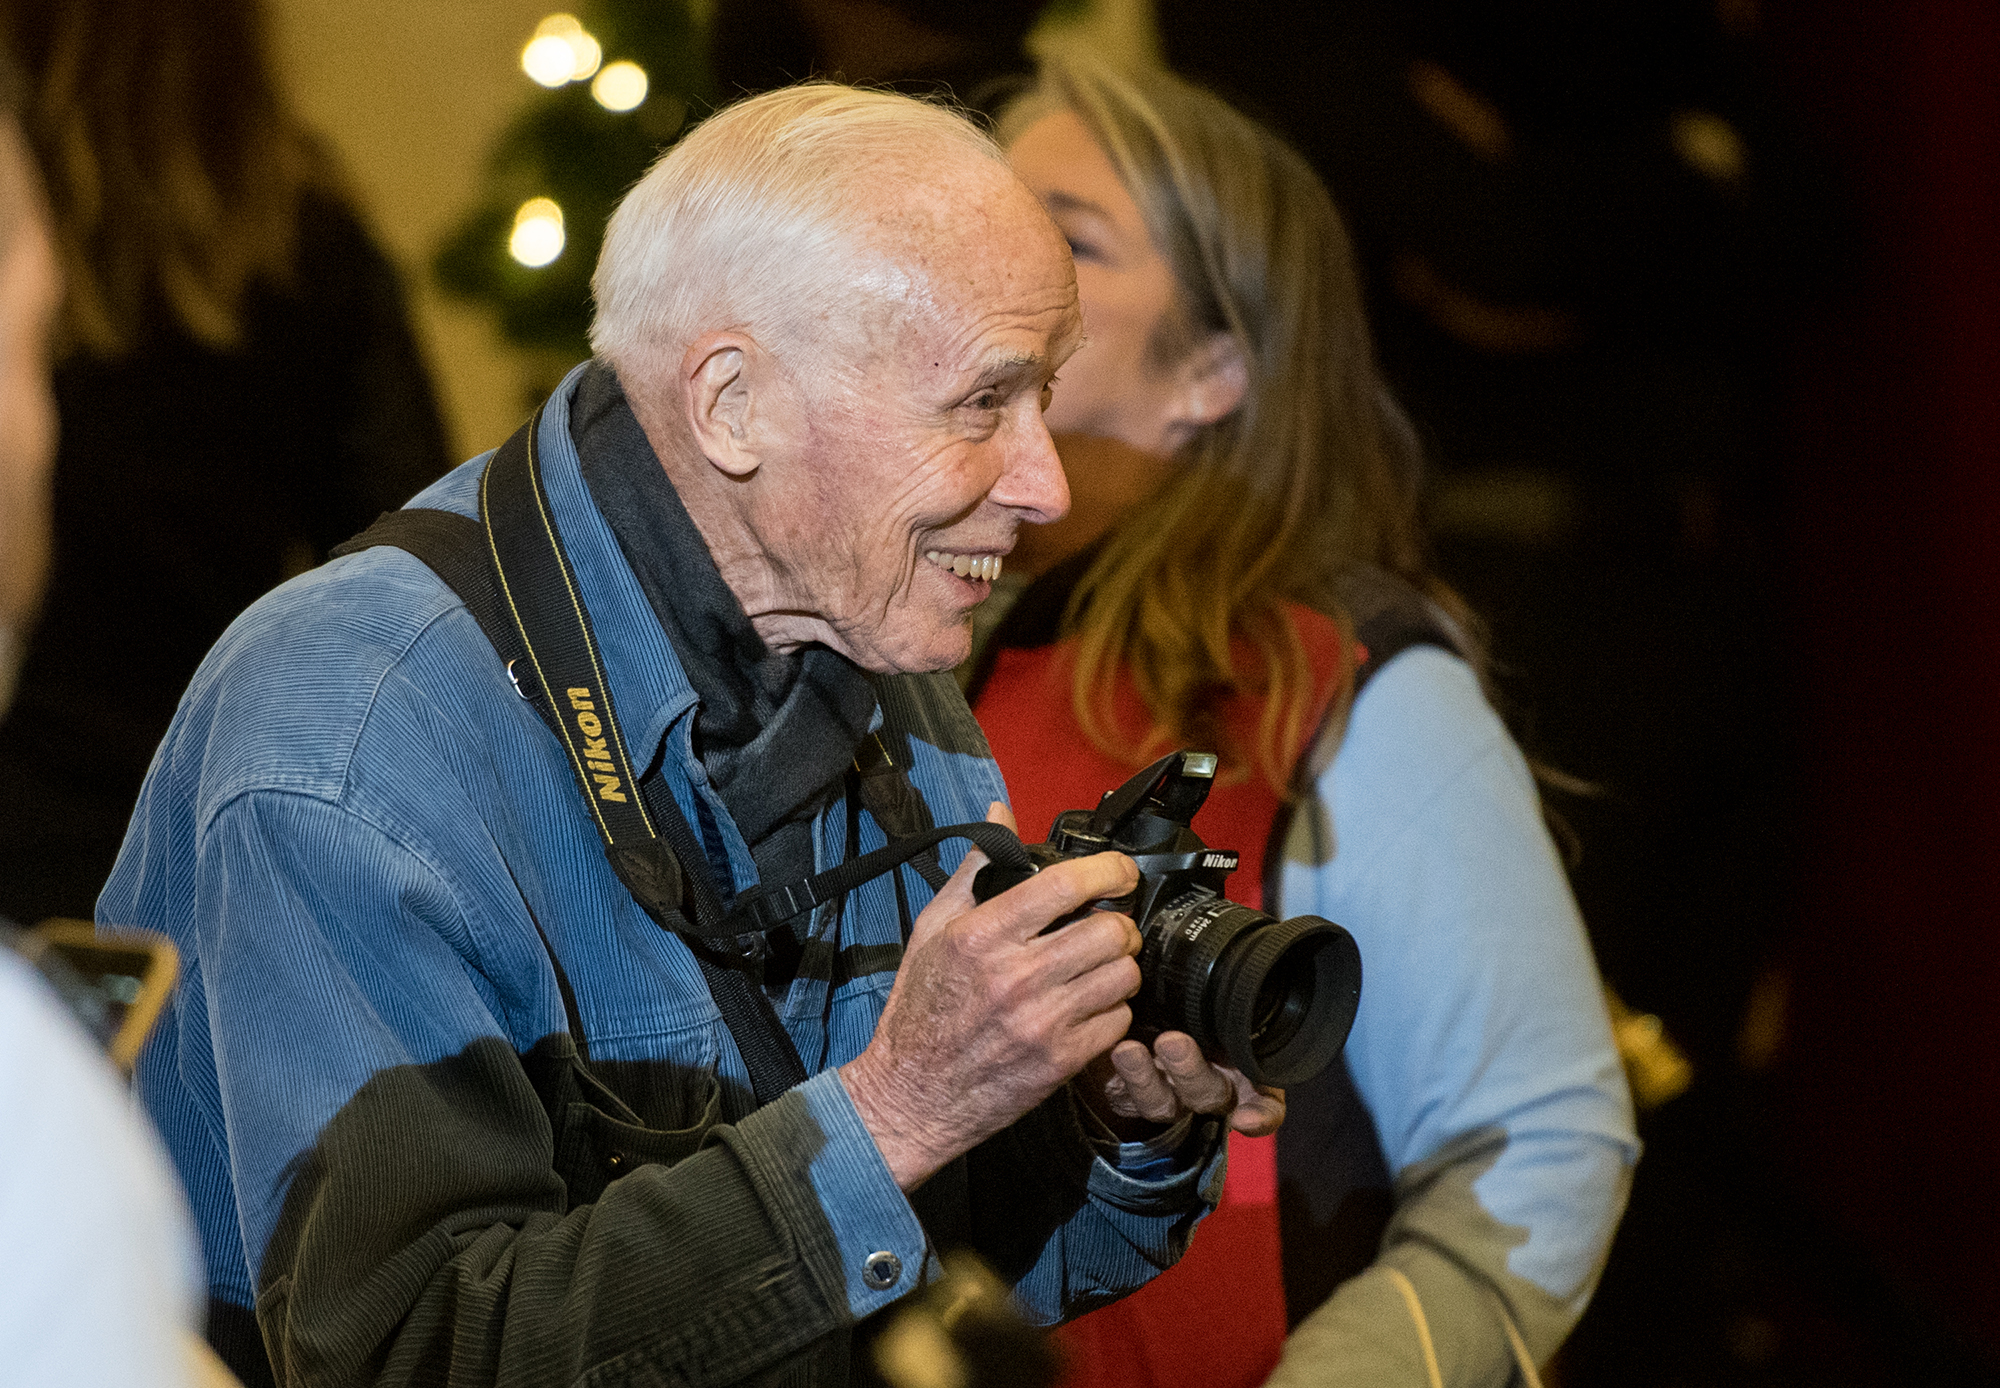 Bill Cunningham attends the 2015 Lord & Taylor holiday windows unveiling at Lord & Taylor on November 12, 2015 in New York City.  (Photo by Noam Galai/WireImage)